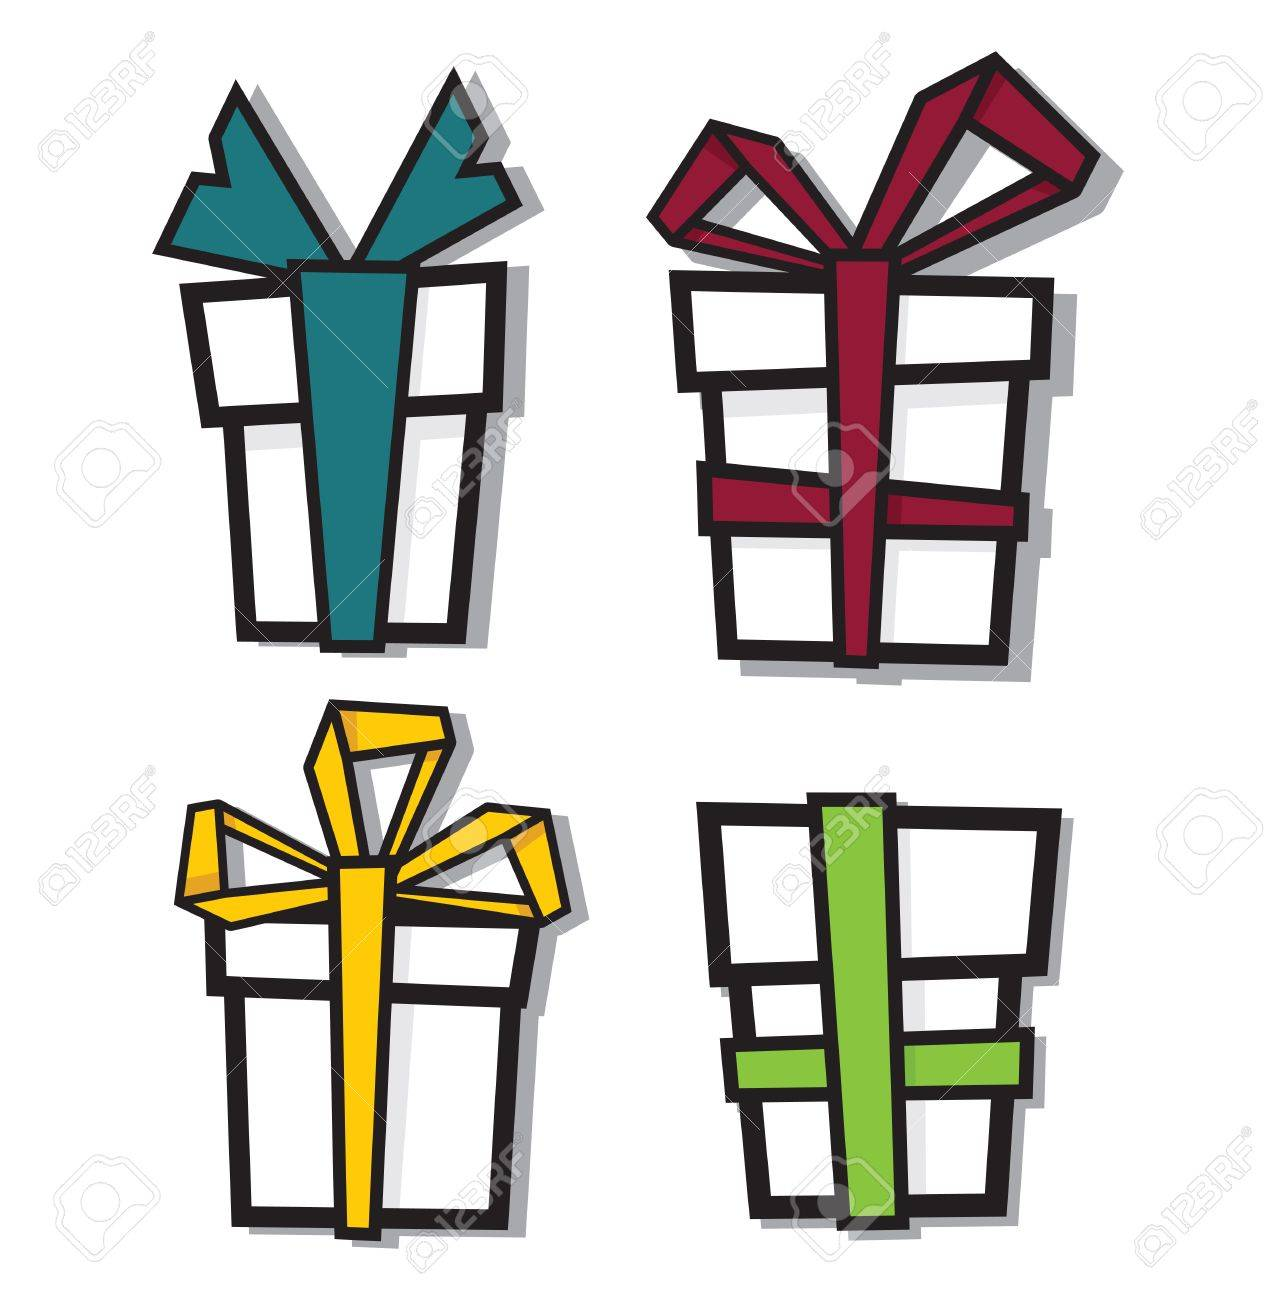 Gift Boxes Stock Vector - 18048240